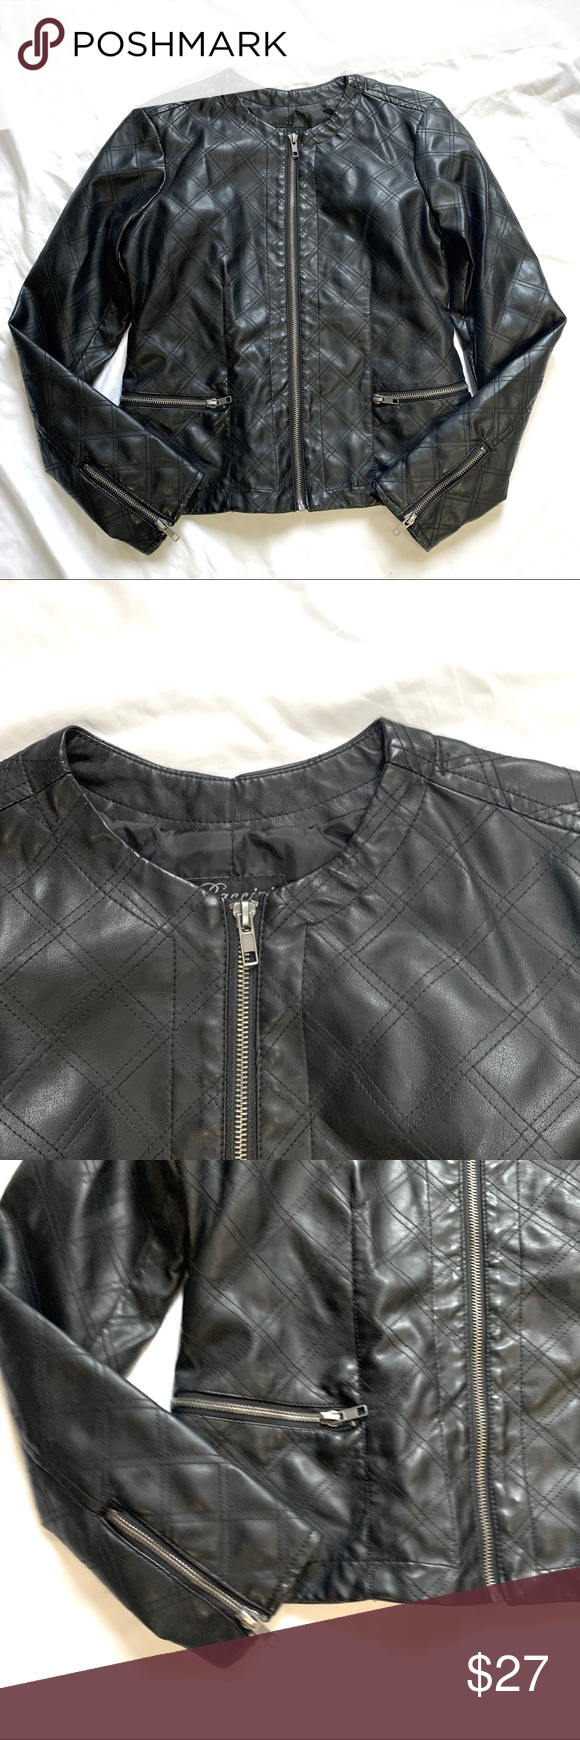 Baccini Petite Small Black Polyu Jacket Excellent Baccini Brand Size Petite Small Excellent Condition Quilted Pattern Ja Fashion Fashion Trends Clothes Design [ 1740 x 580 Pixel ]